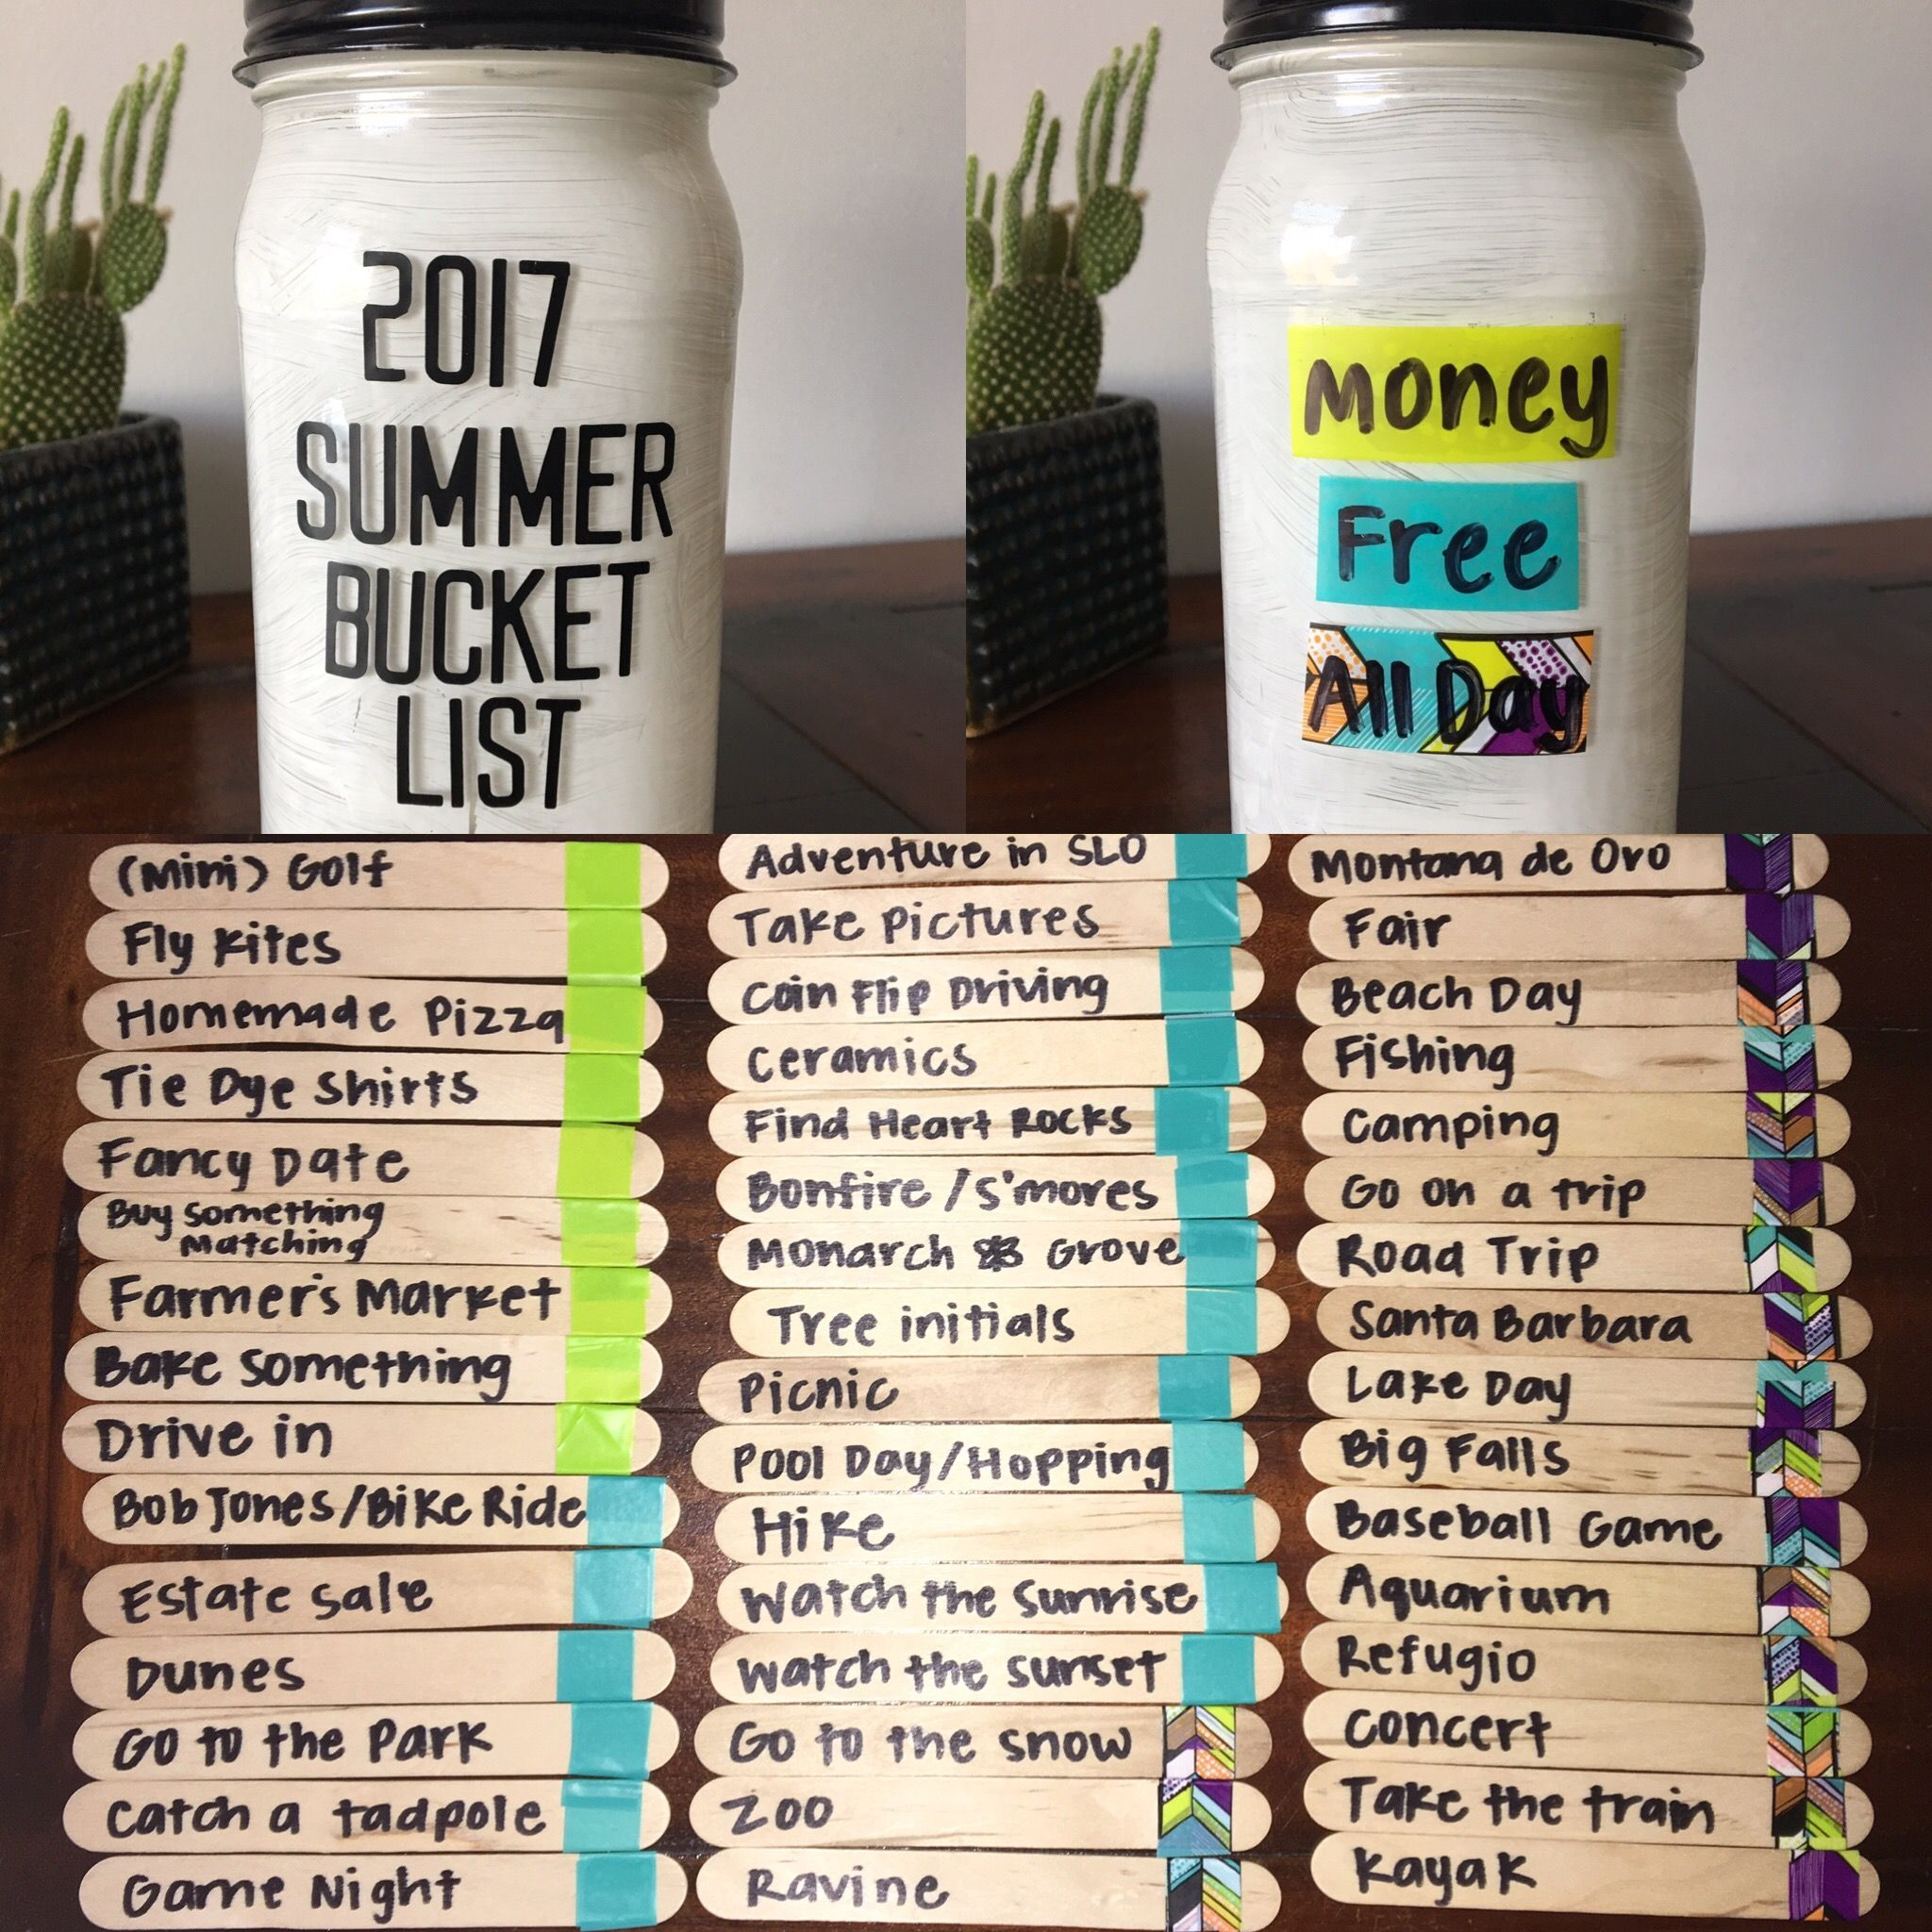 Pin By Brighton On Things To Do With Friends Diy Crafts For Boyfriend Boyfriend Crafts Diy Gifts For Boyfriend